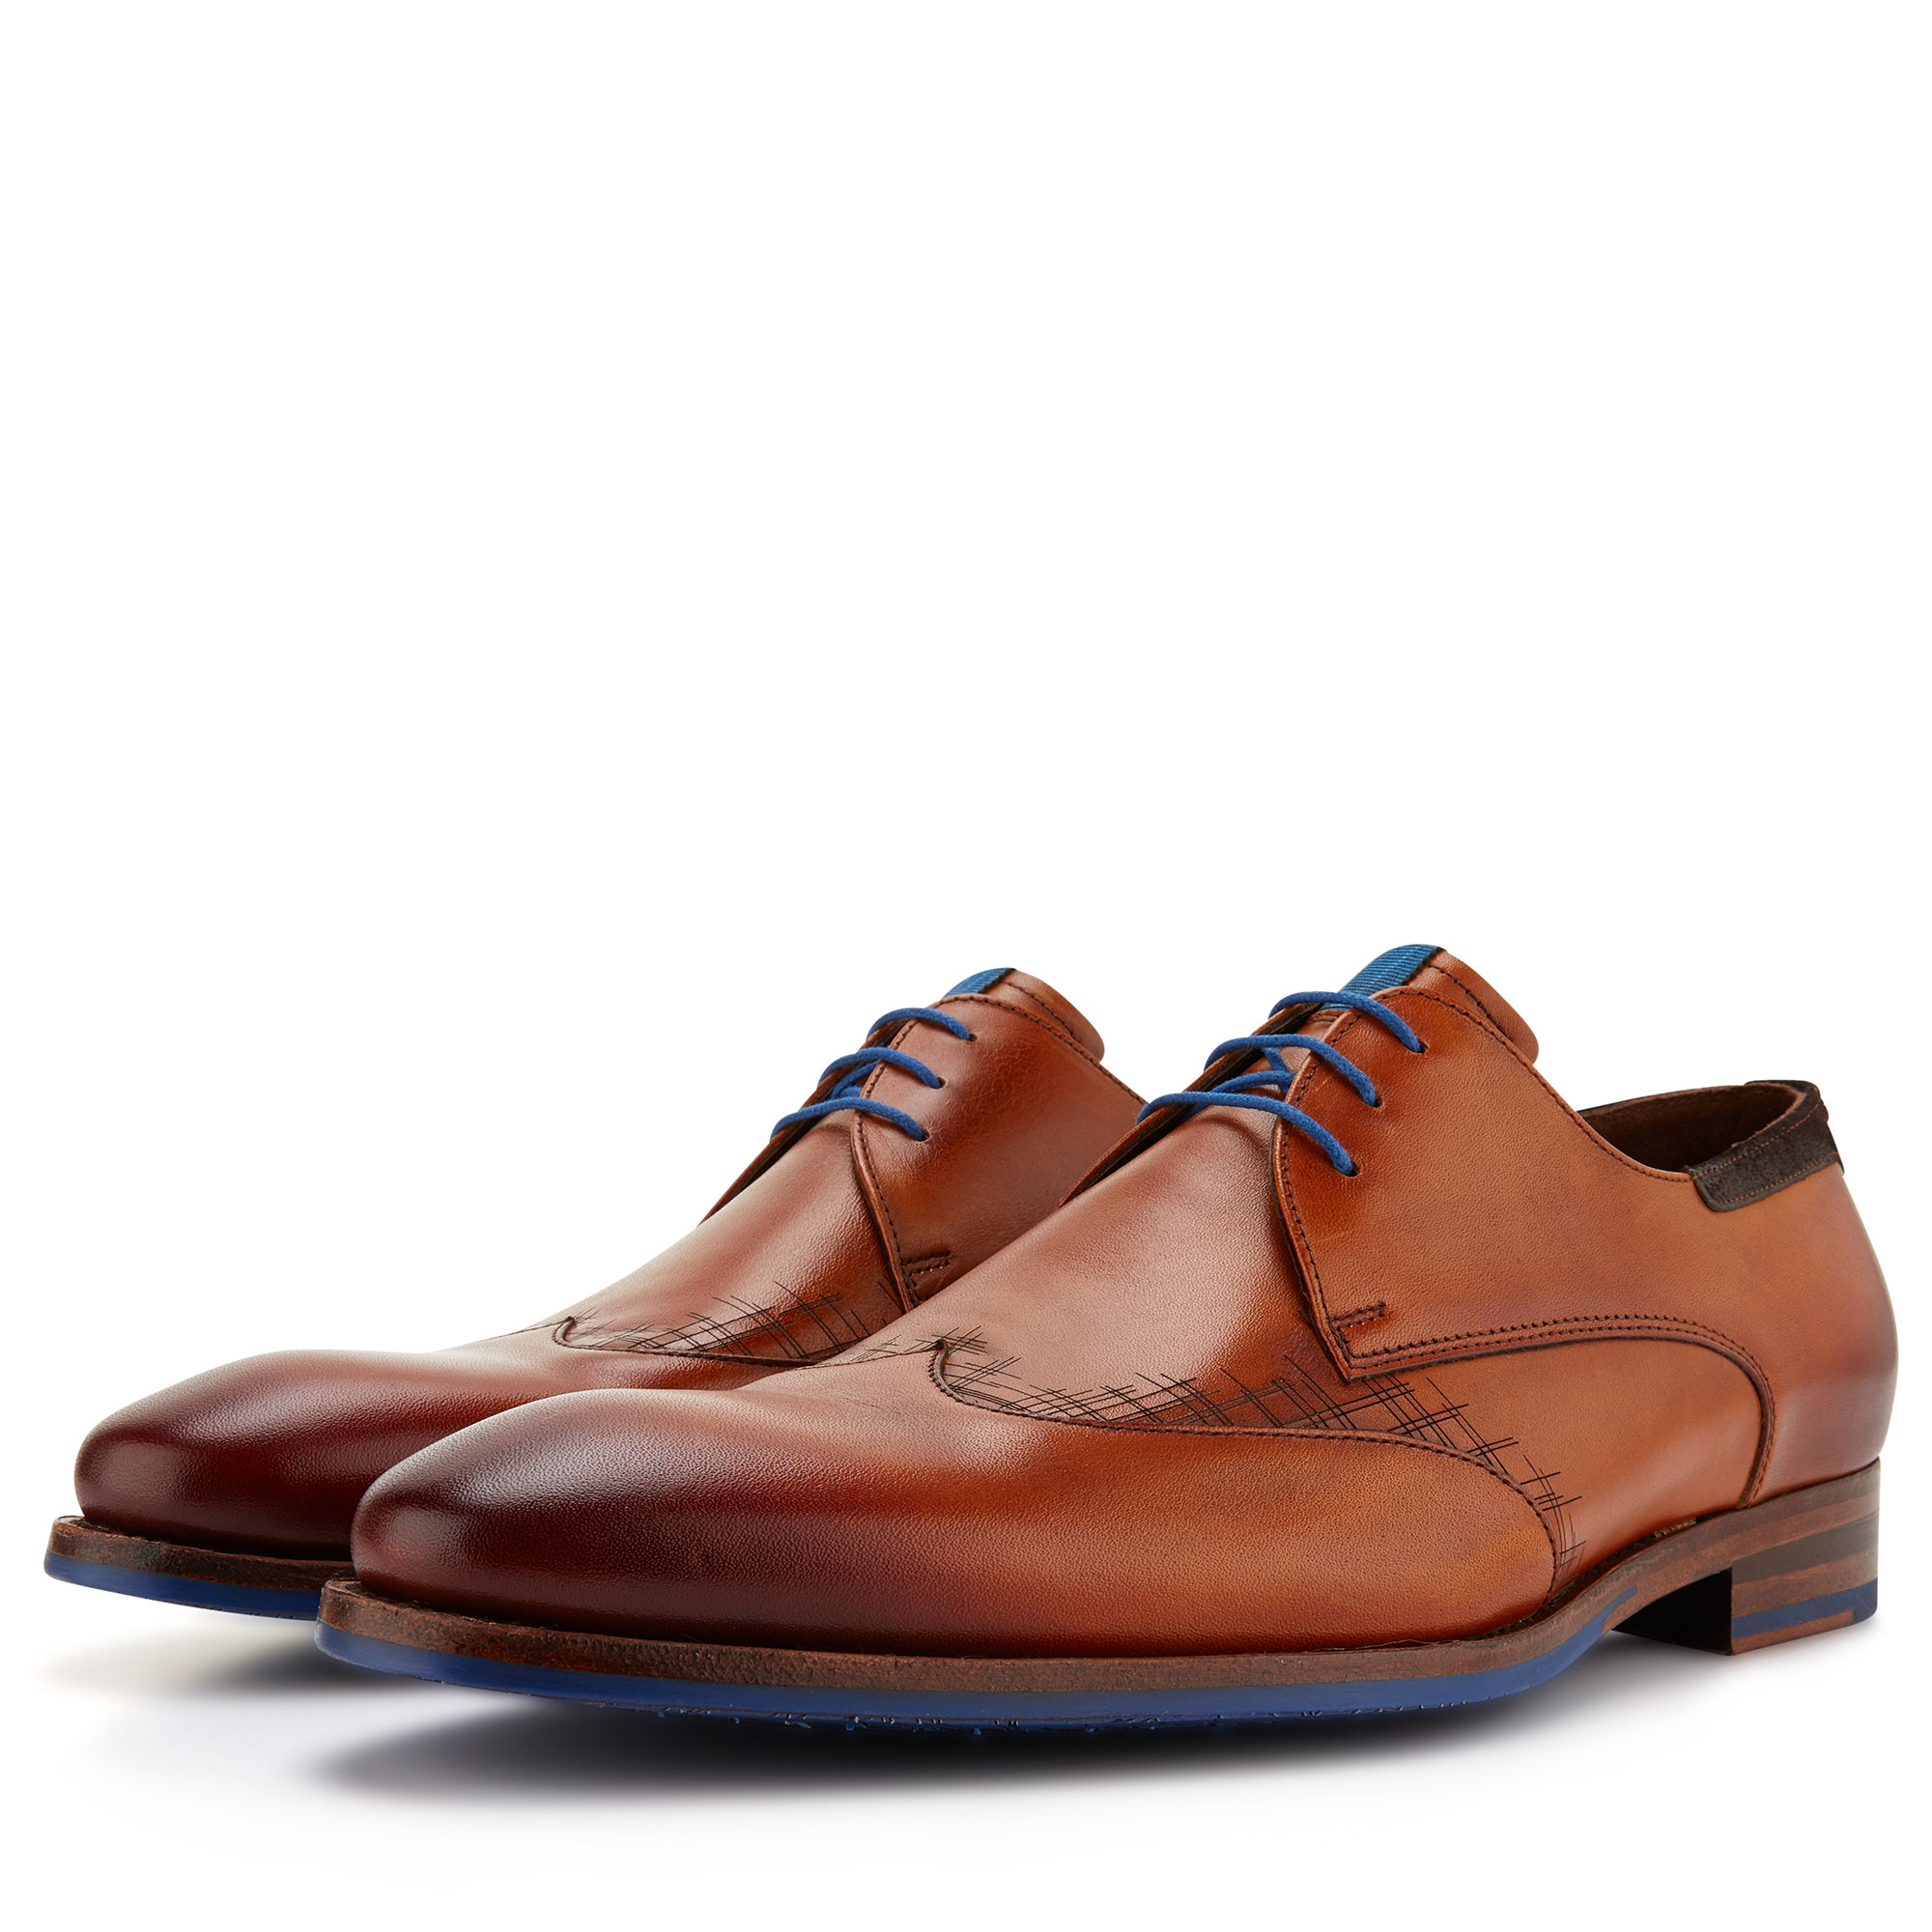 14029/00 - Floris van Bommel cognac leather men's lace shoe